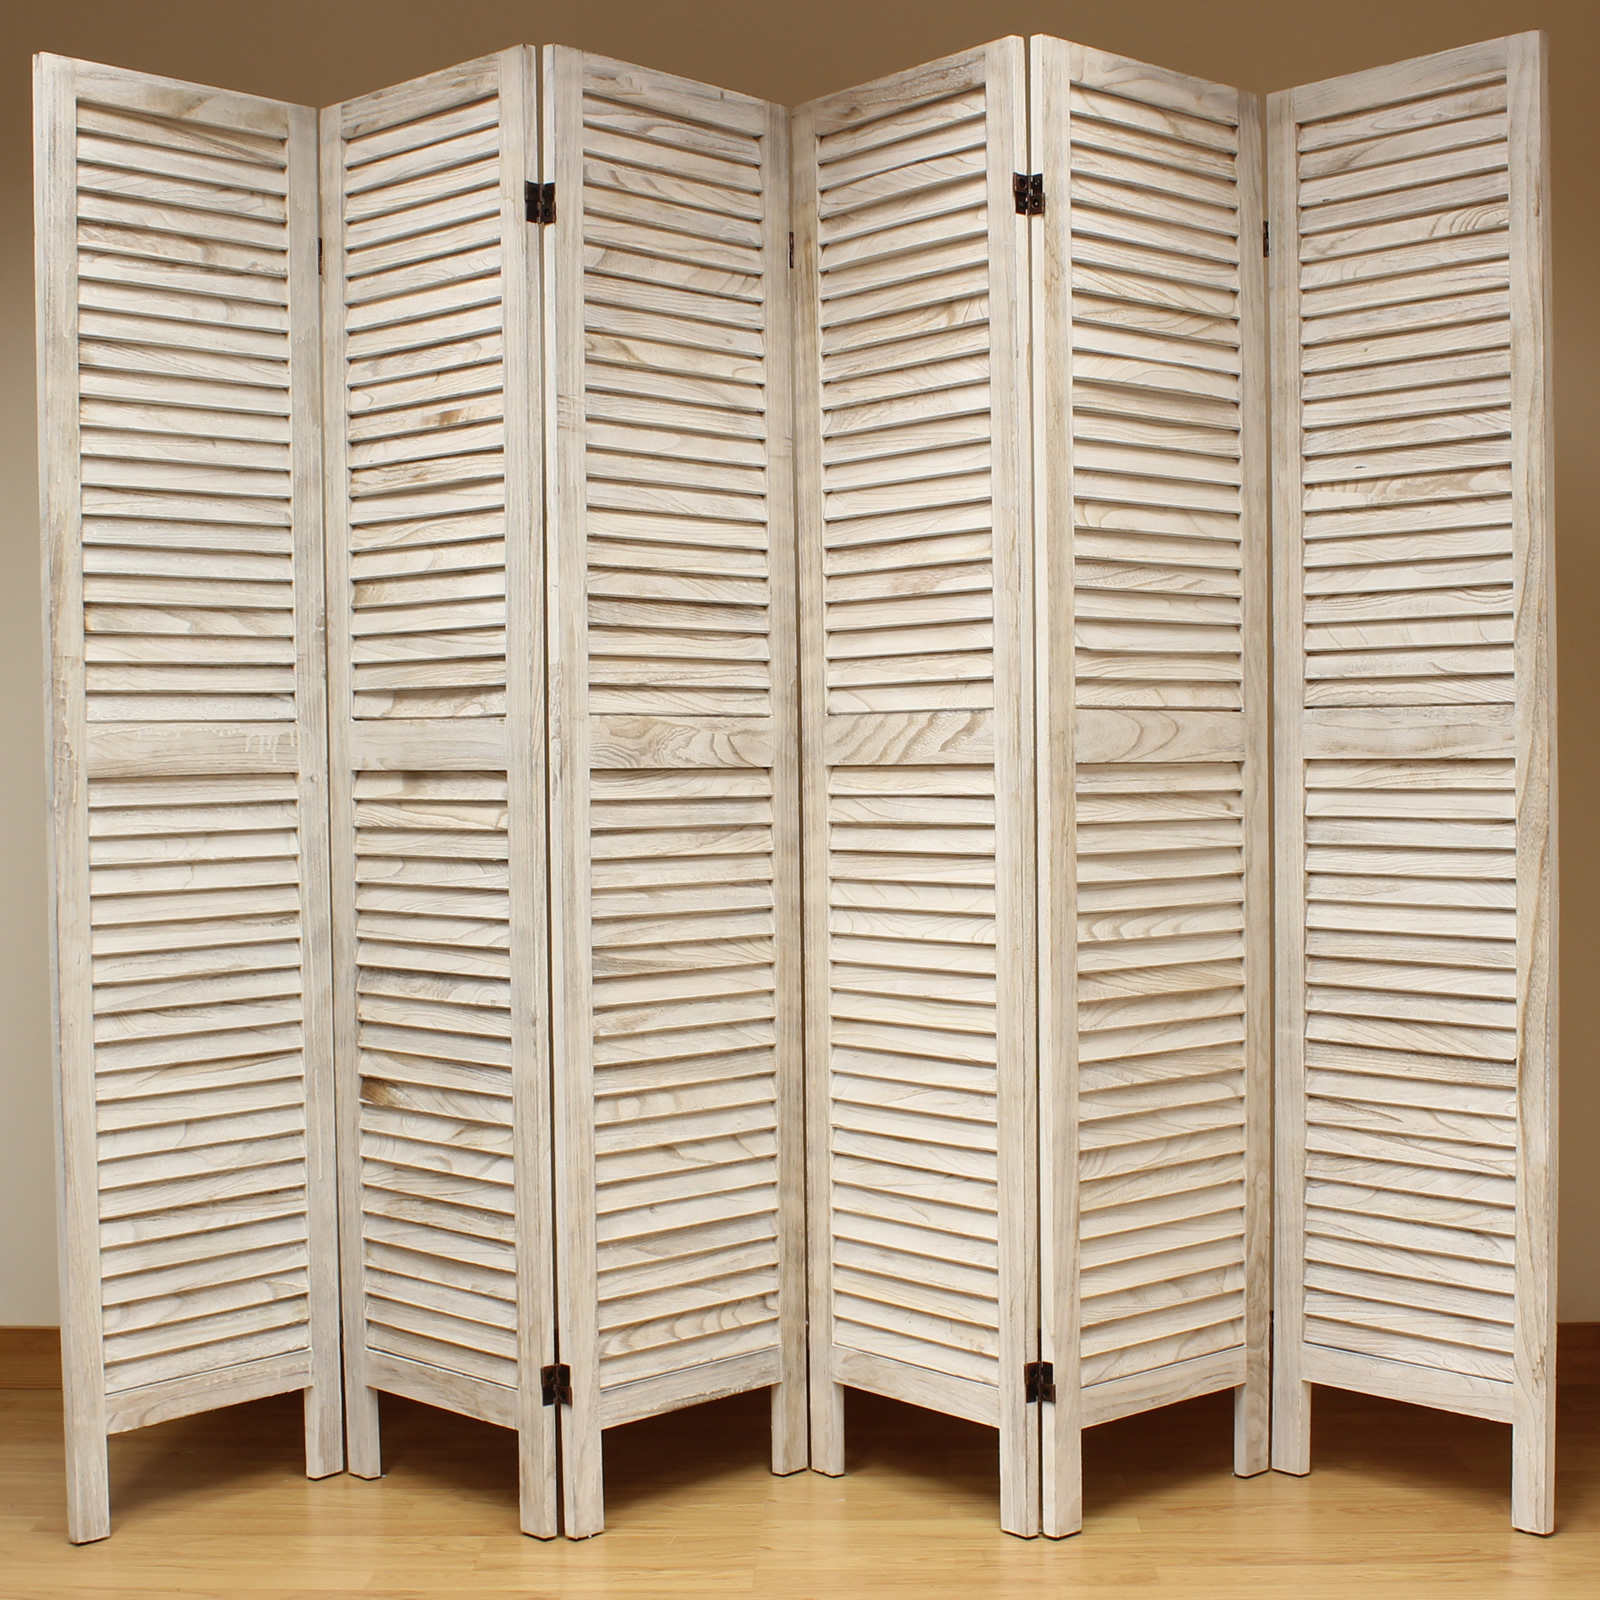 Wood Screens Room Dividers ~ Cream panel wooden slat room divider home privacy screen